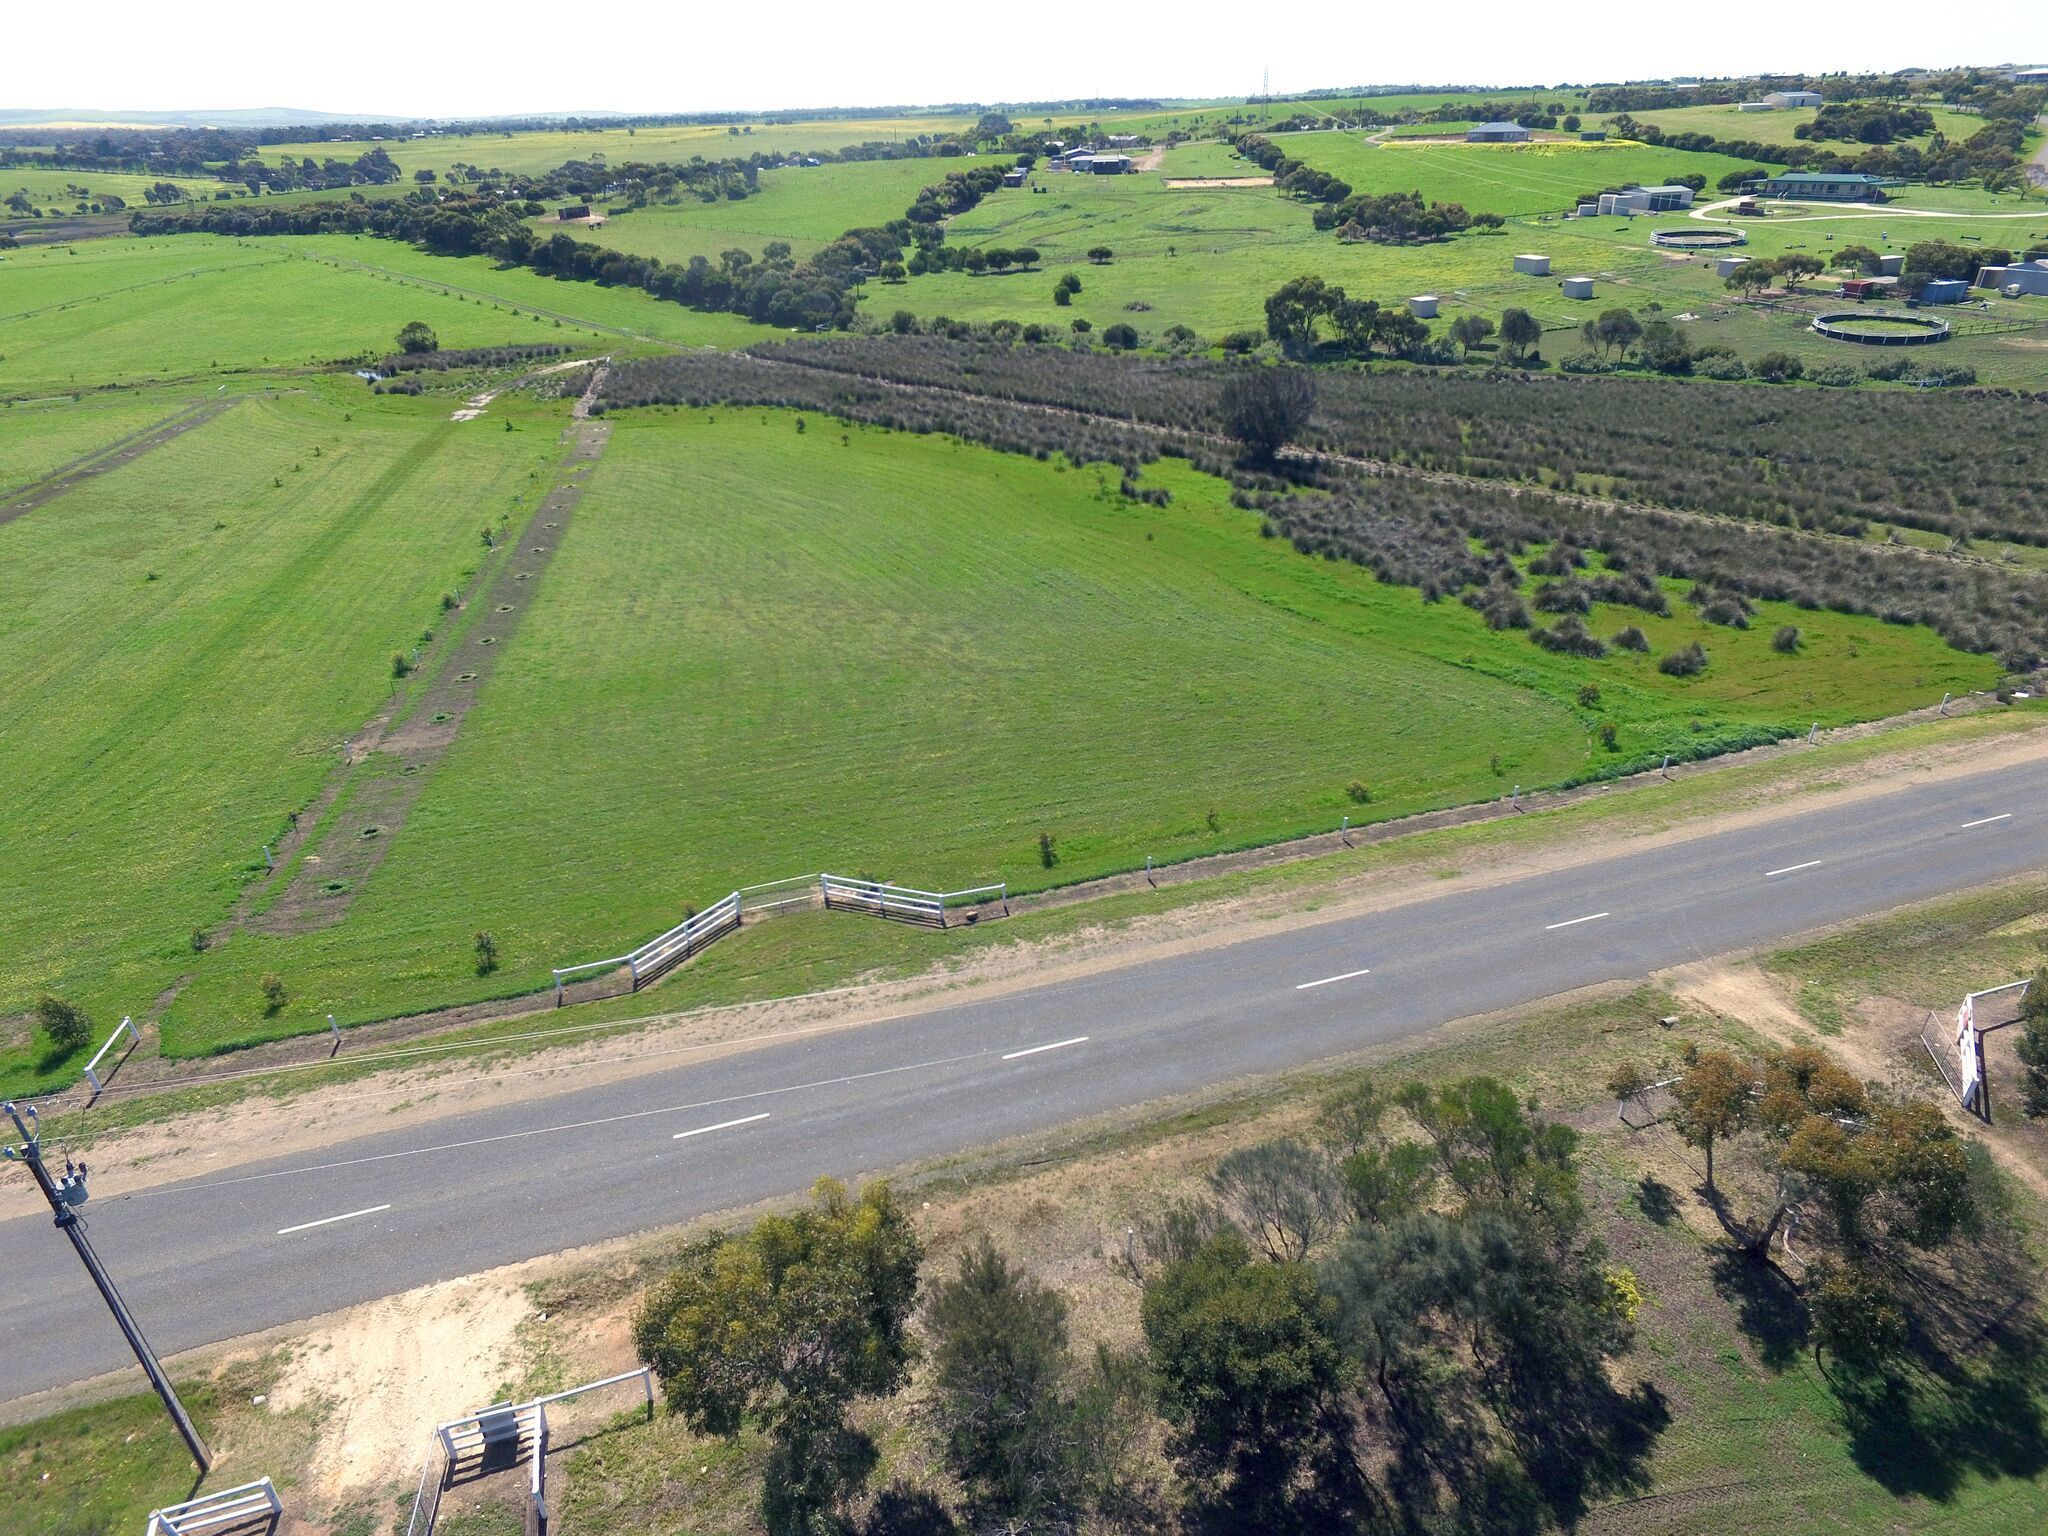 Lot 5 Richardson Road - The Triangle